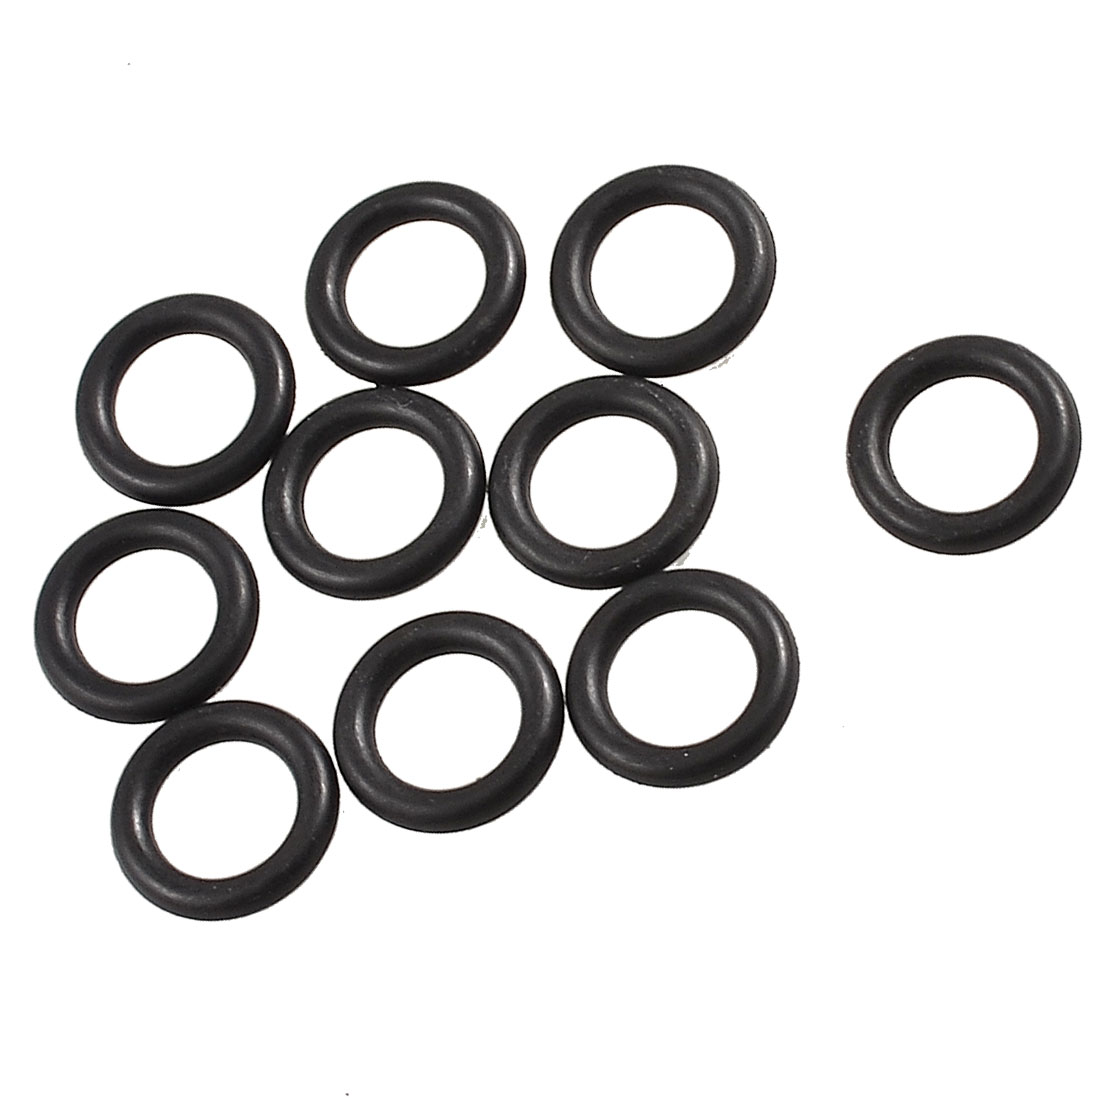 19mm x 12mm x 3.5mm Black Mechanical Rubber O Ring Oil Seal Gaskets 10 Pcs